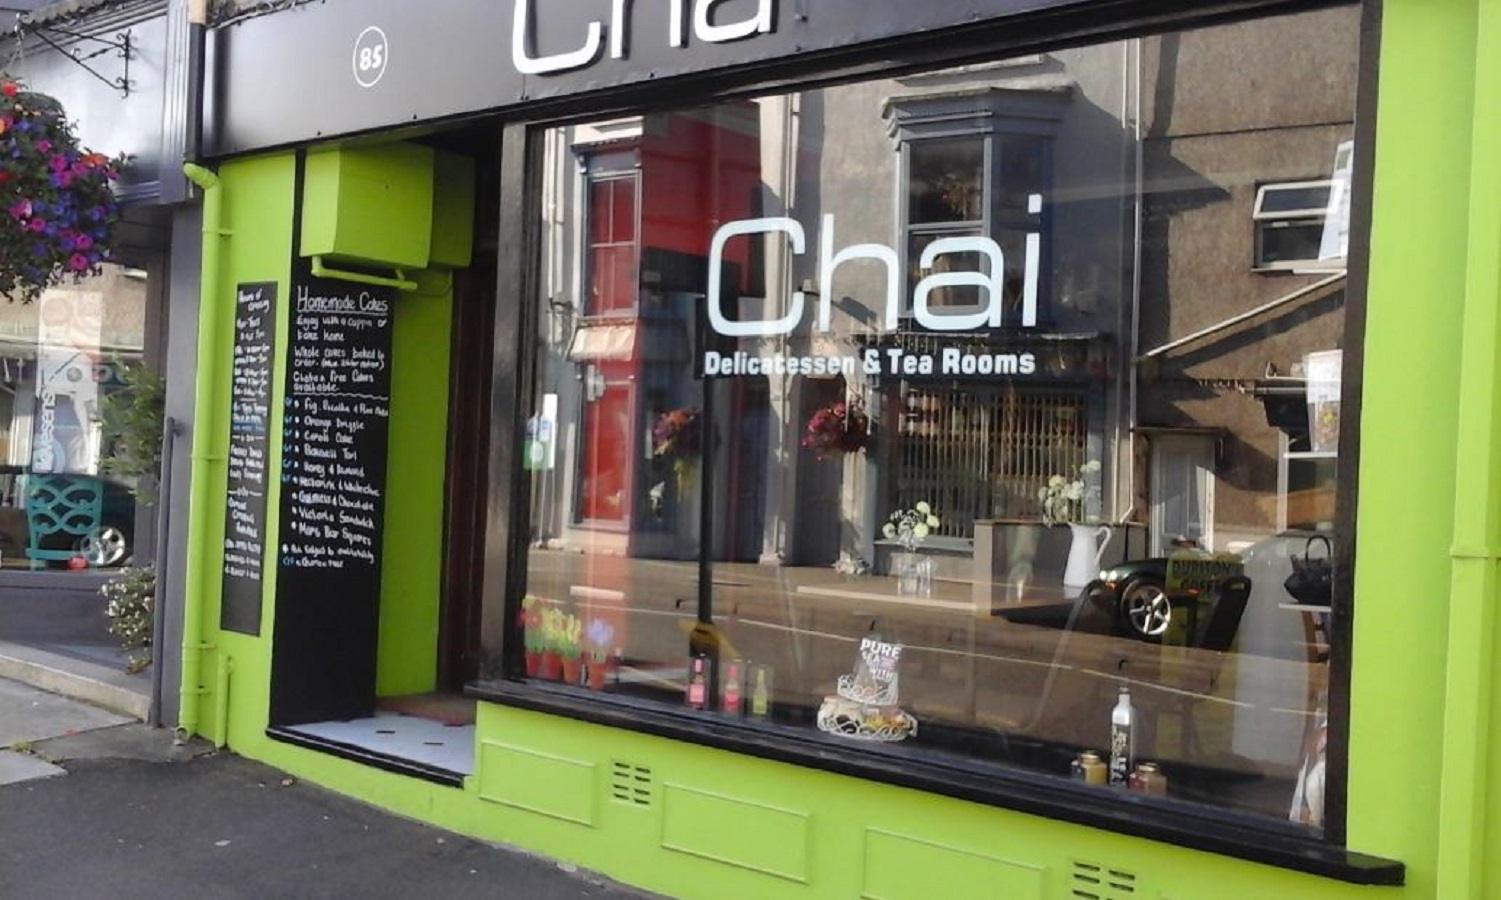 Chai Deli & Tea Room